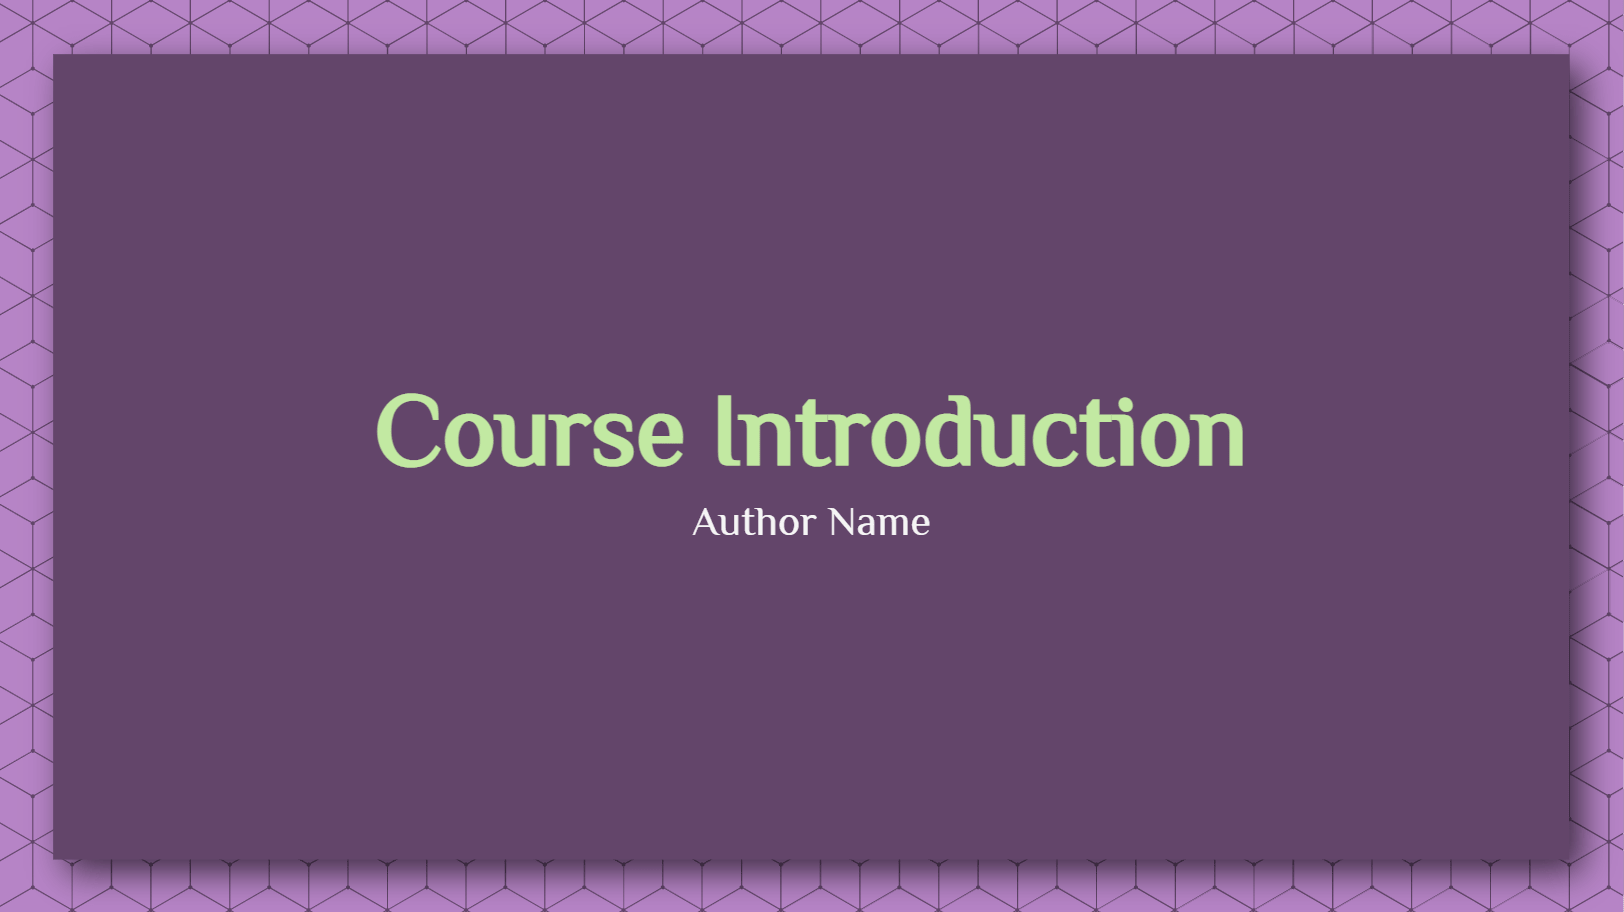 Course introduction document is generally used to give a brief explanation about a course and this document is used to attract potential buyers. Also, these kinds of documents are sent to class members to give them information before classes or often trainers use this during their introductory sessions.